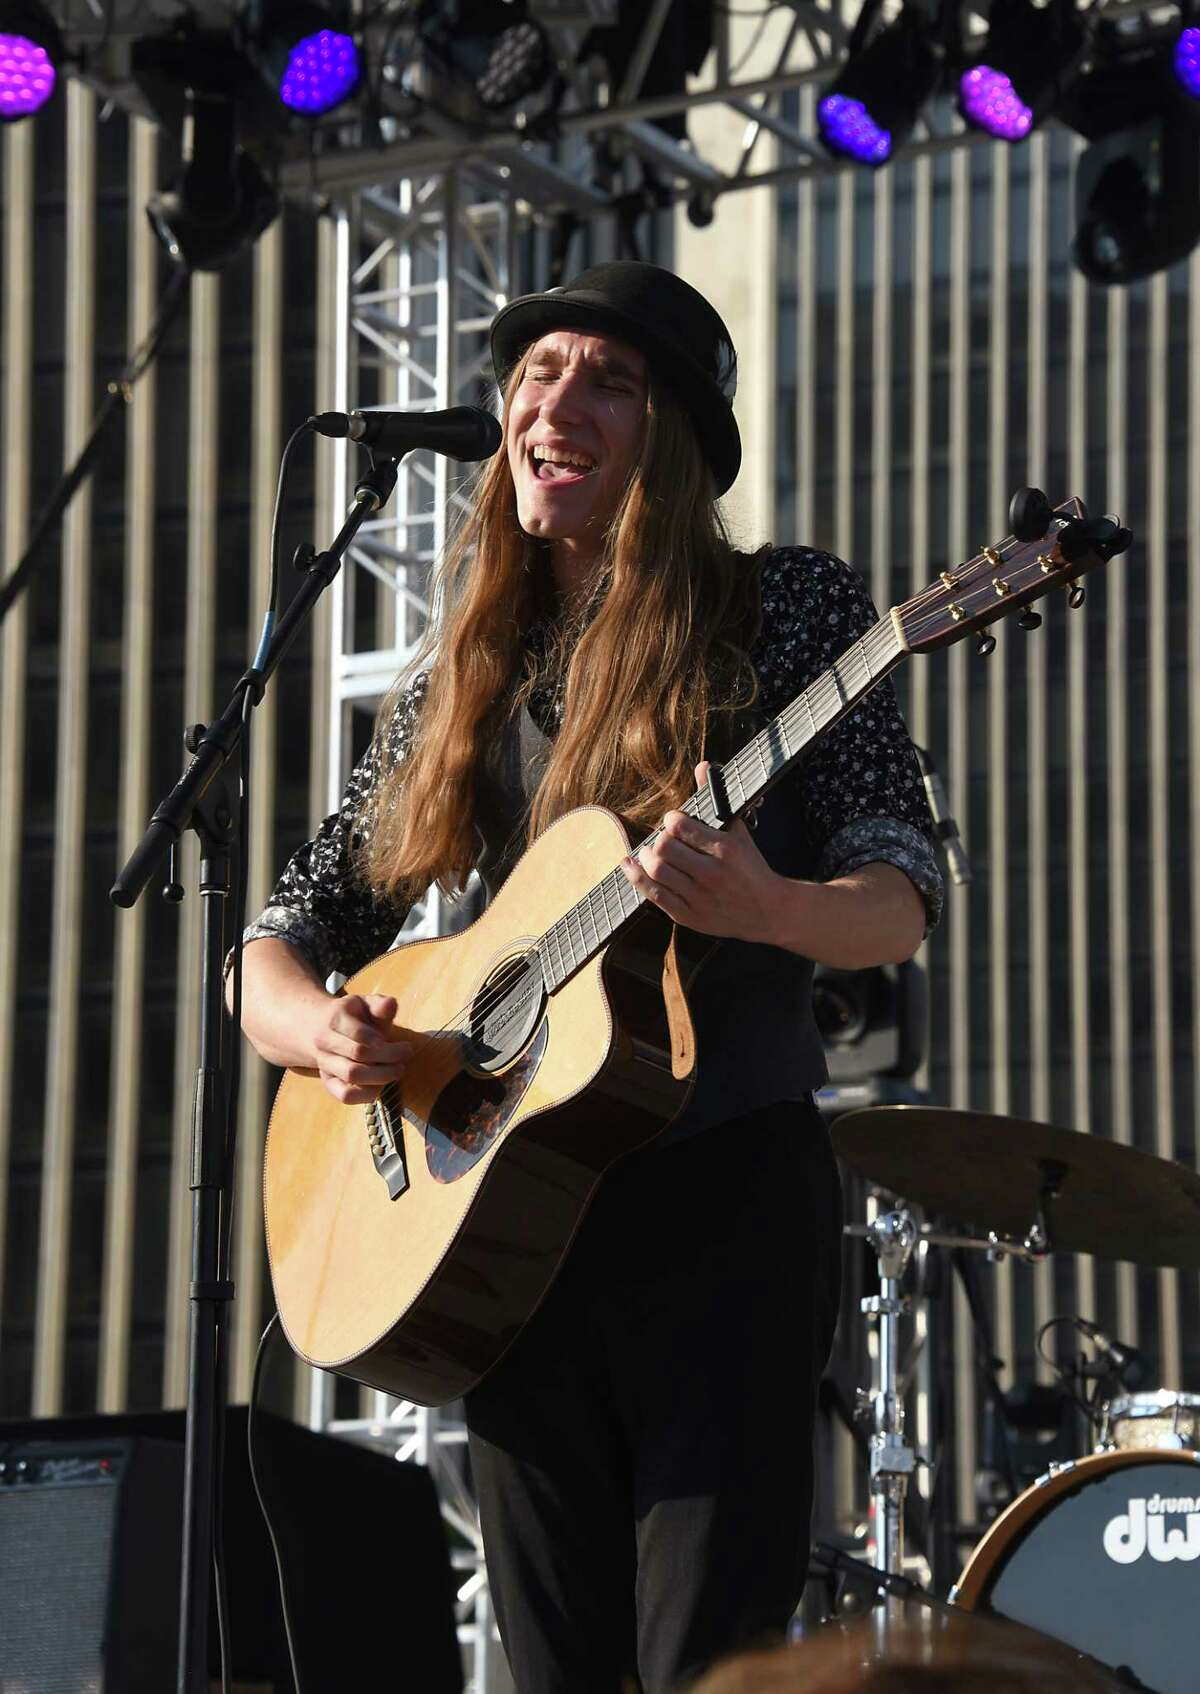 Sawyer Fredericks, winner of the eighth season of The Voice in 2015, performs during the 44th annual Independence Day celebration at the Empire State Plaza on Thursday, July 4, 2019 in Albany, N.Y. (Lori Van Buren/Times Union)